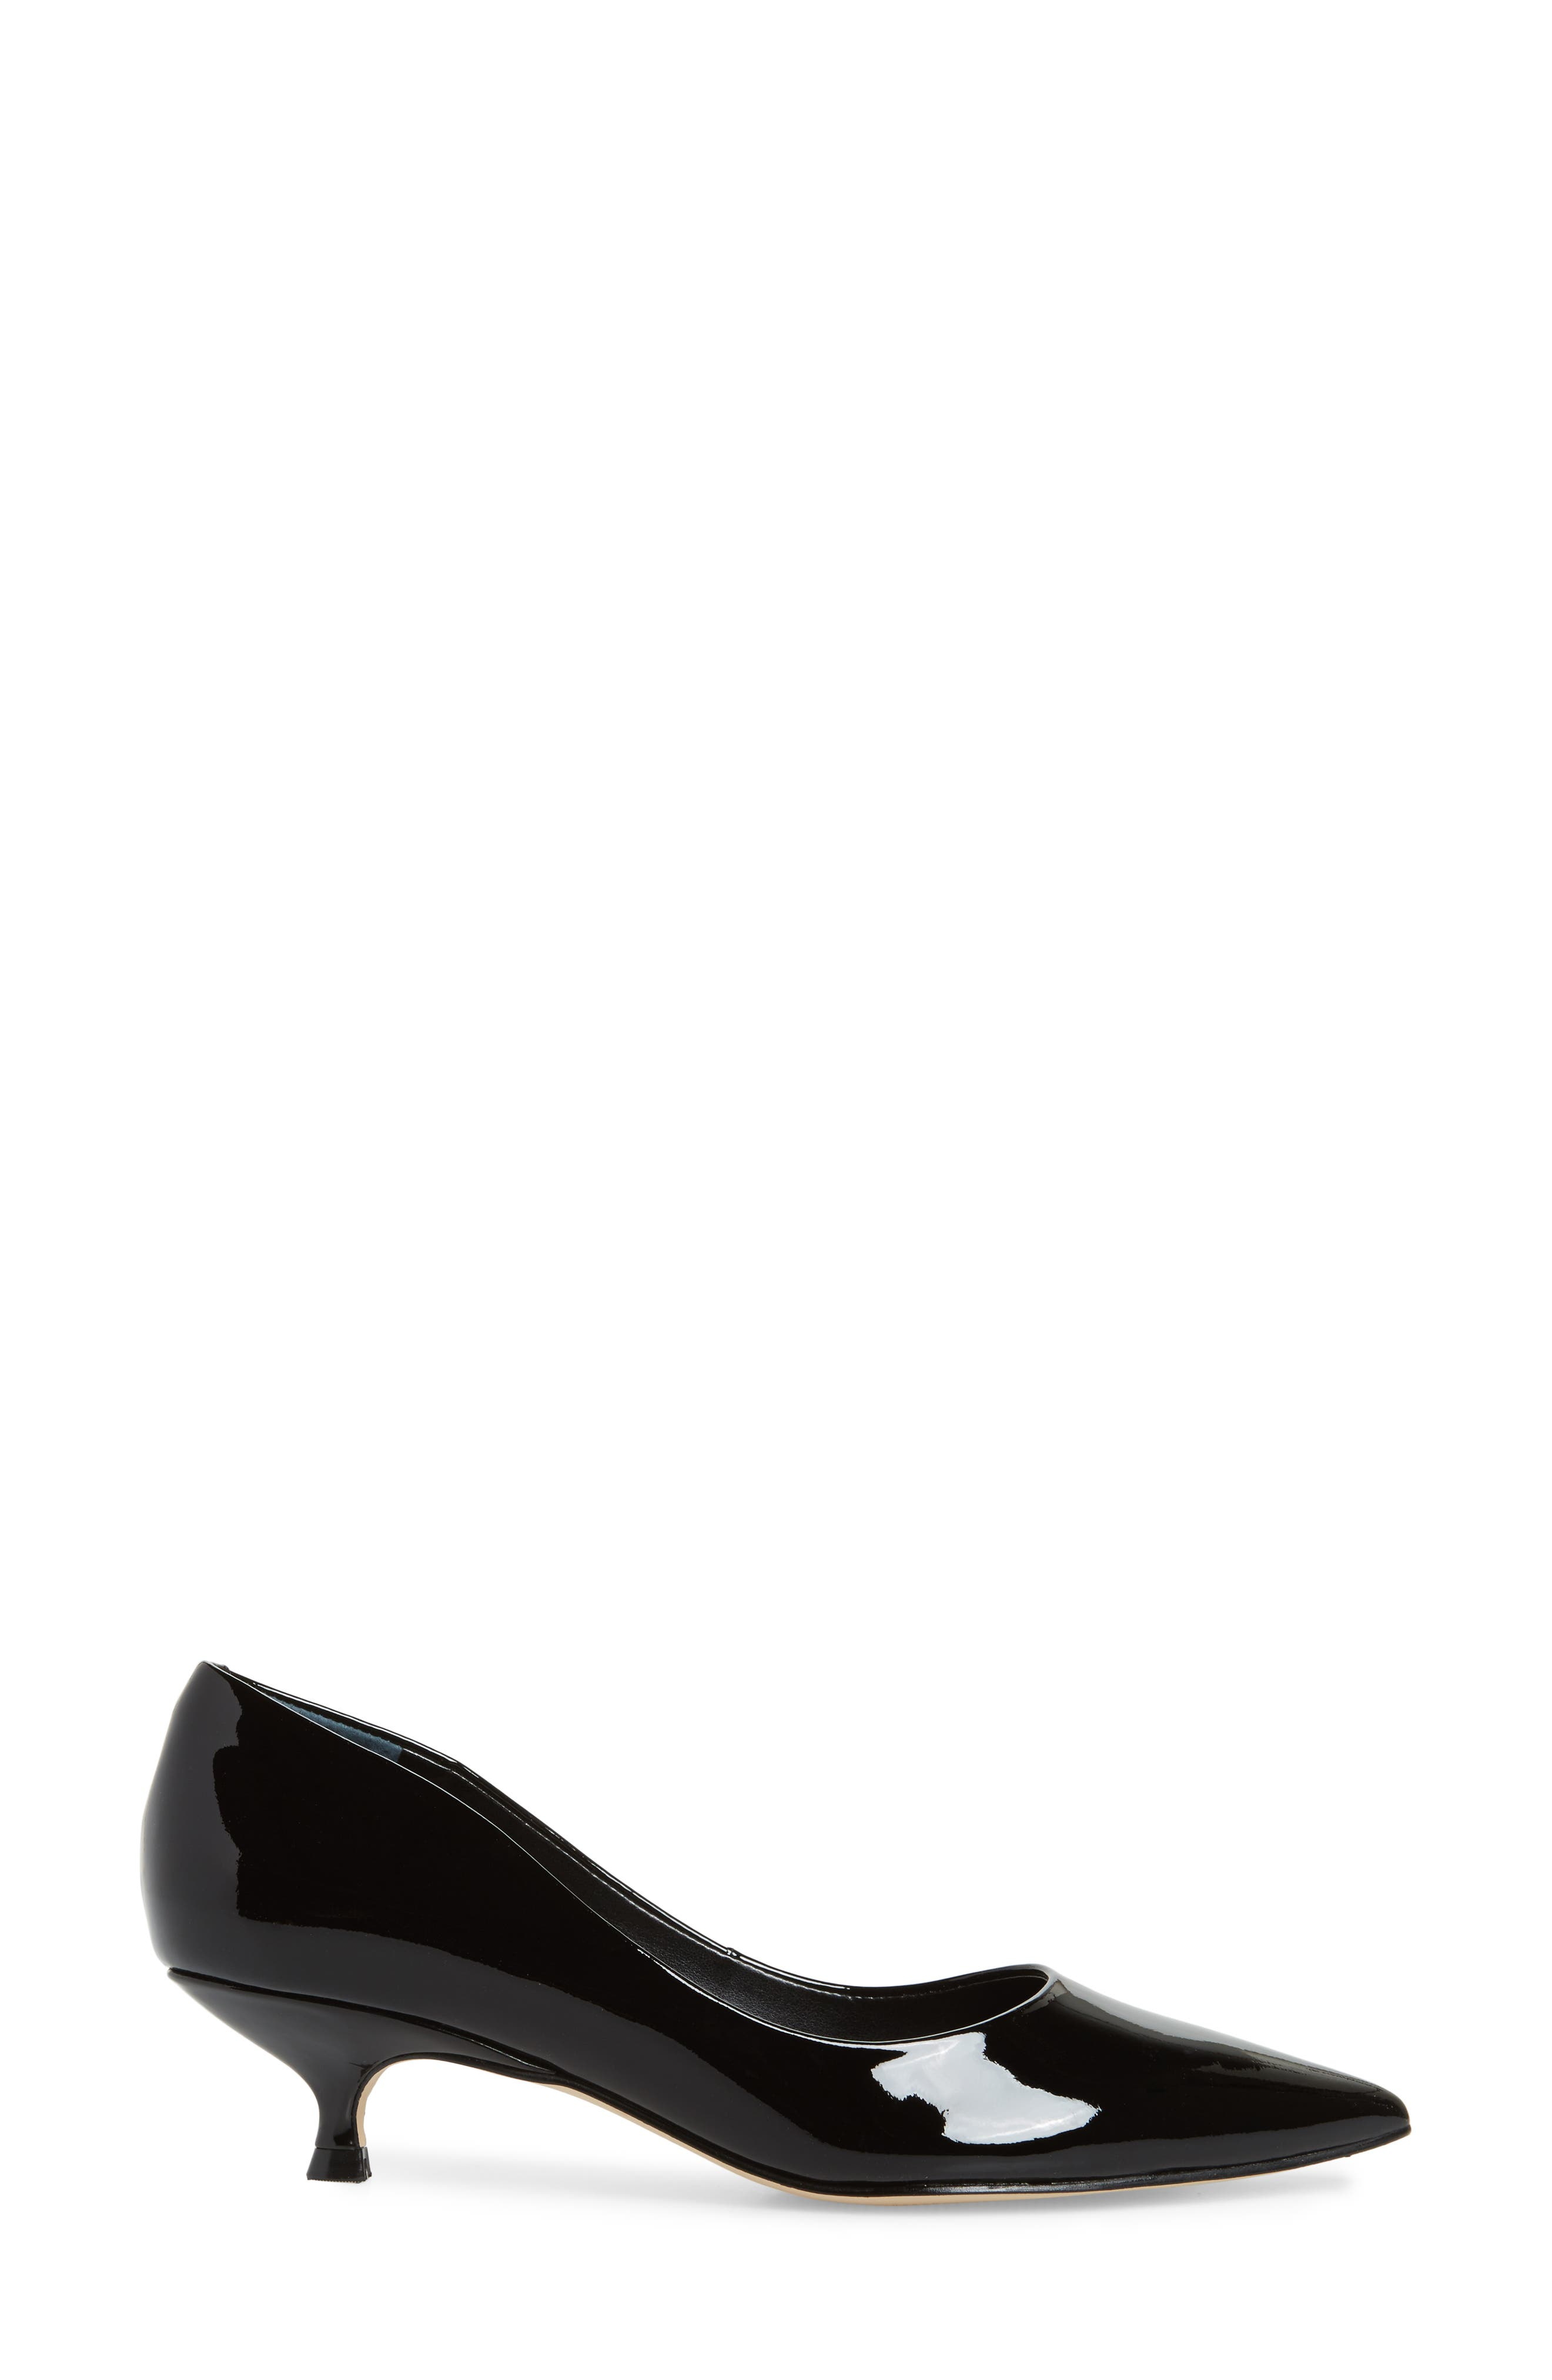 Xanthe Kitten Heel Pump,                             Alternate thumbnail 12, color,